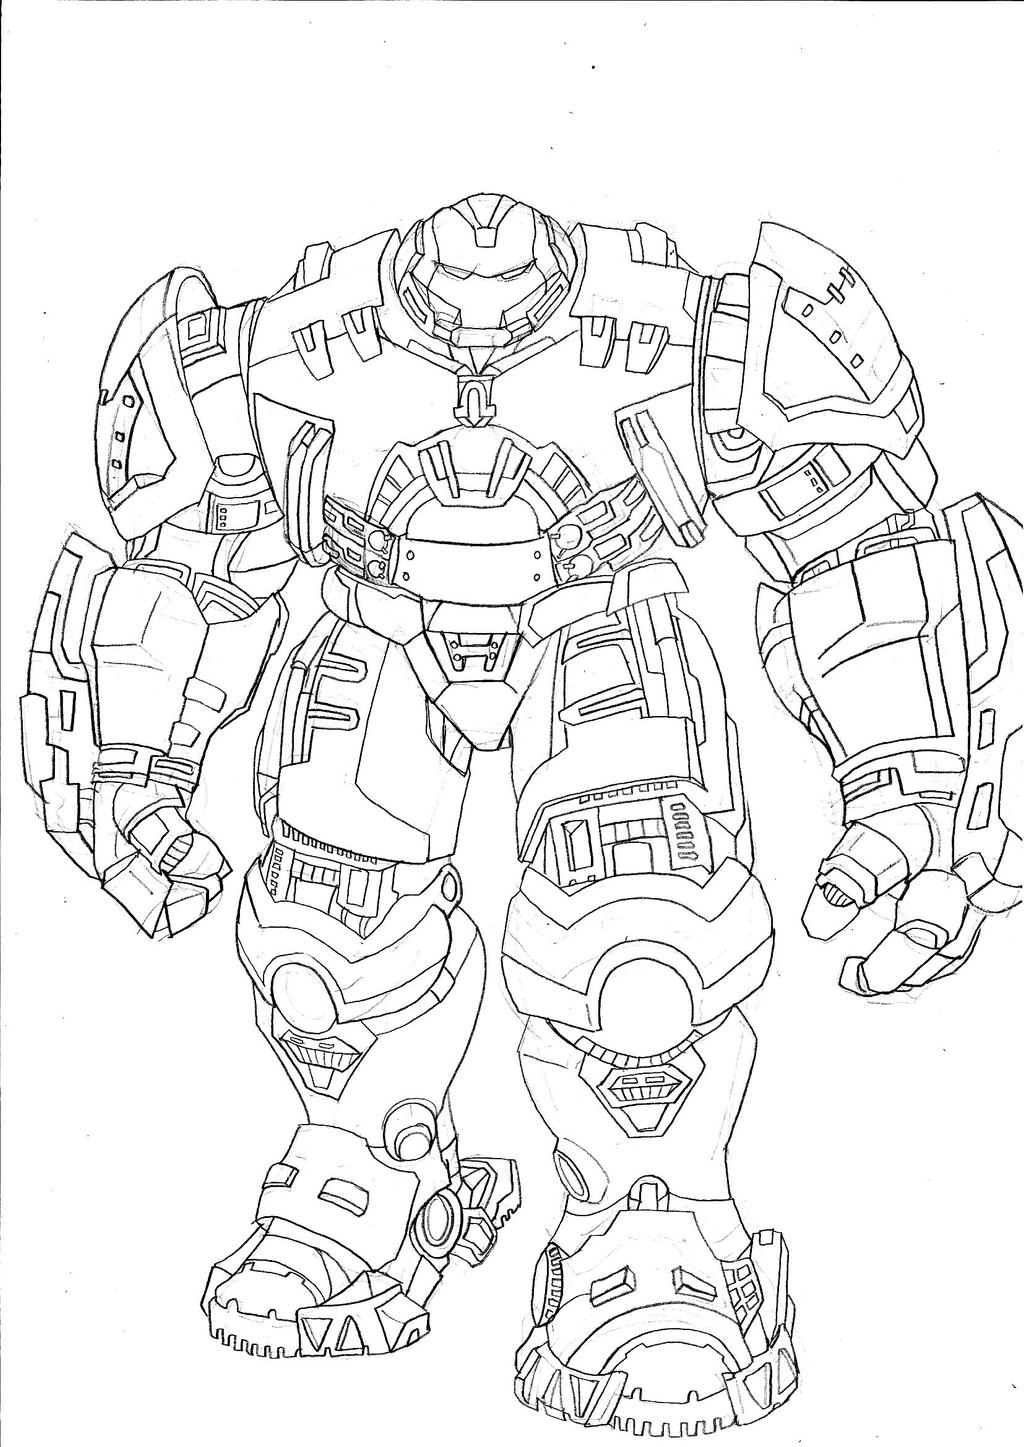 Iron Man Hulkbuster Vs Hulk Coloring Pages Sketch Coloring